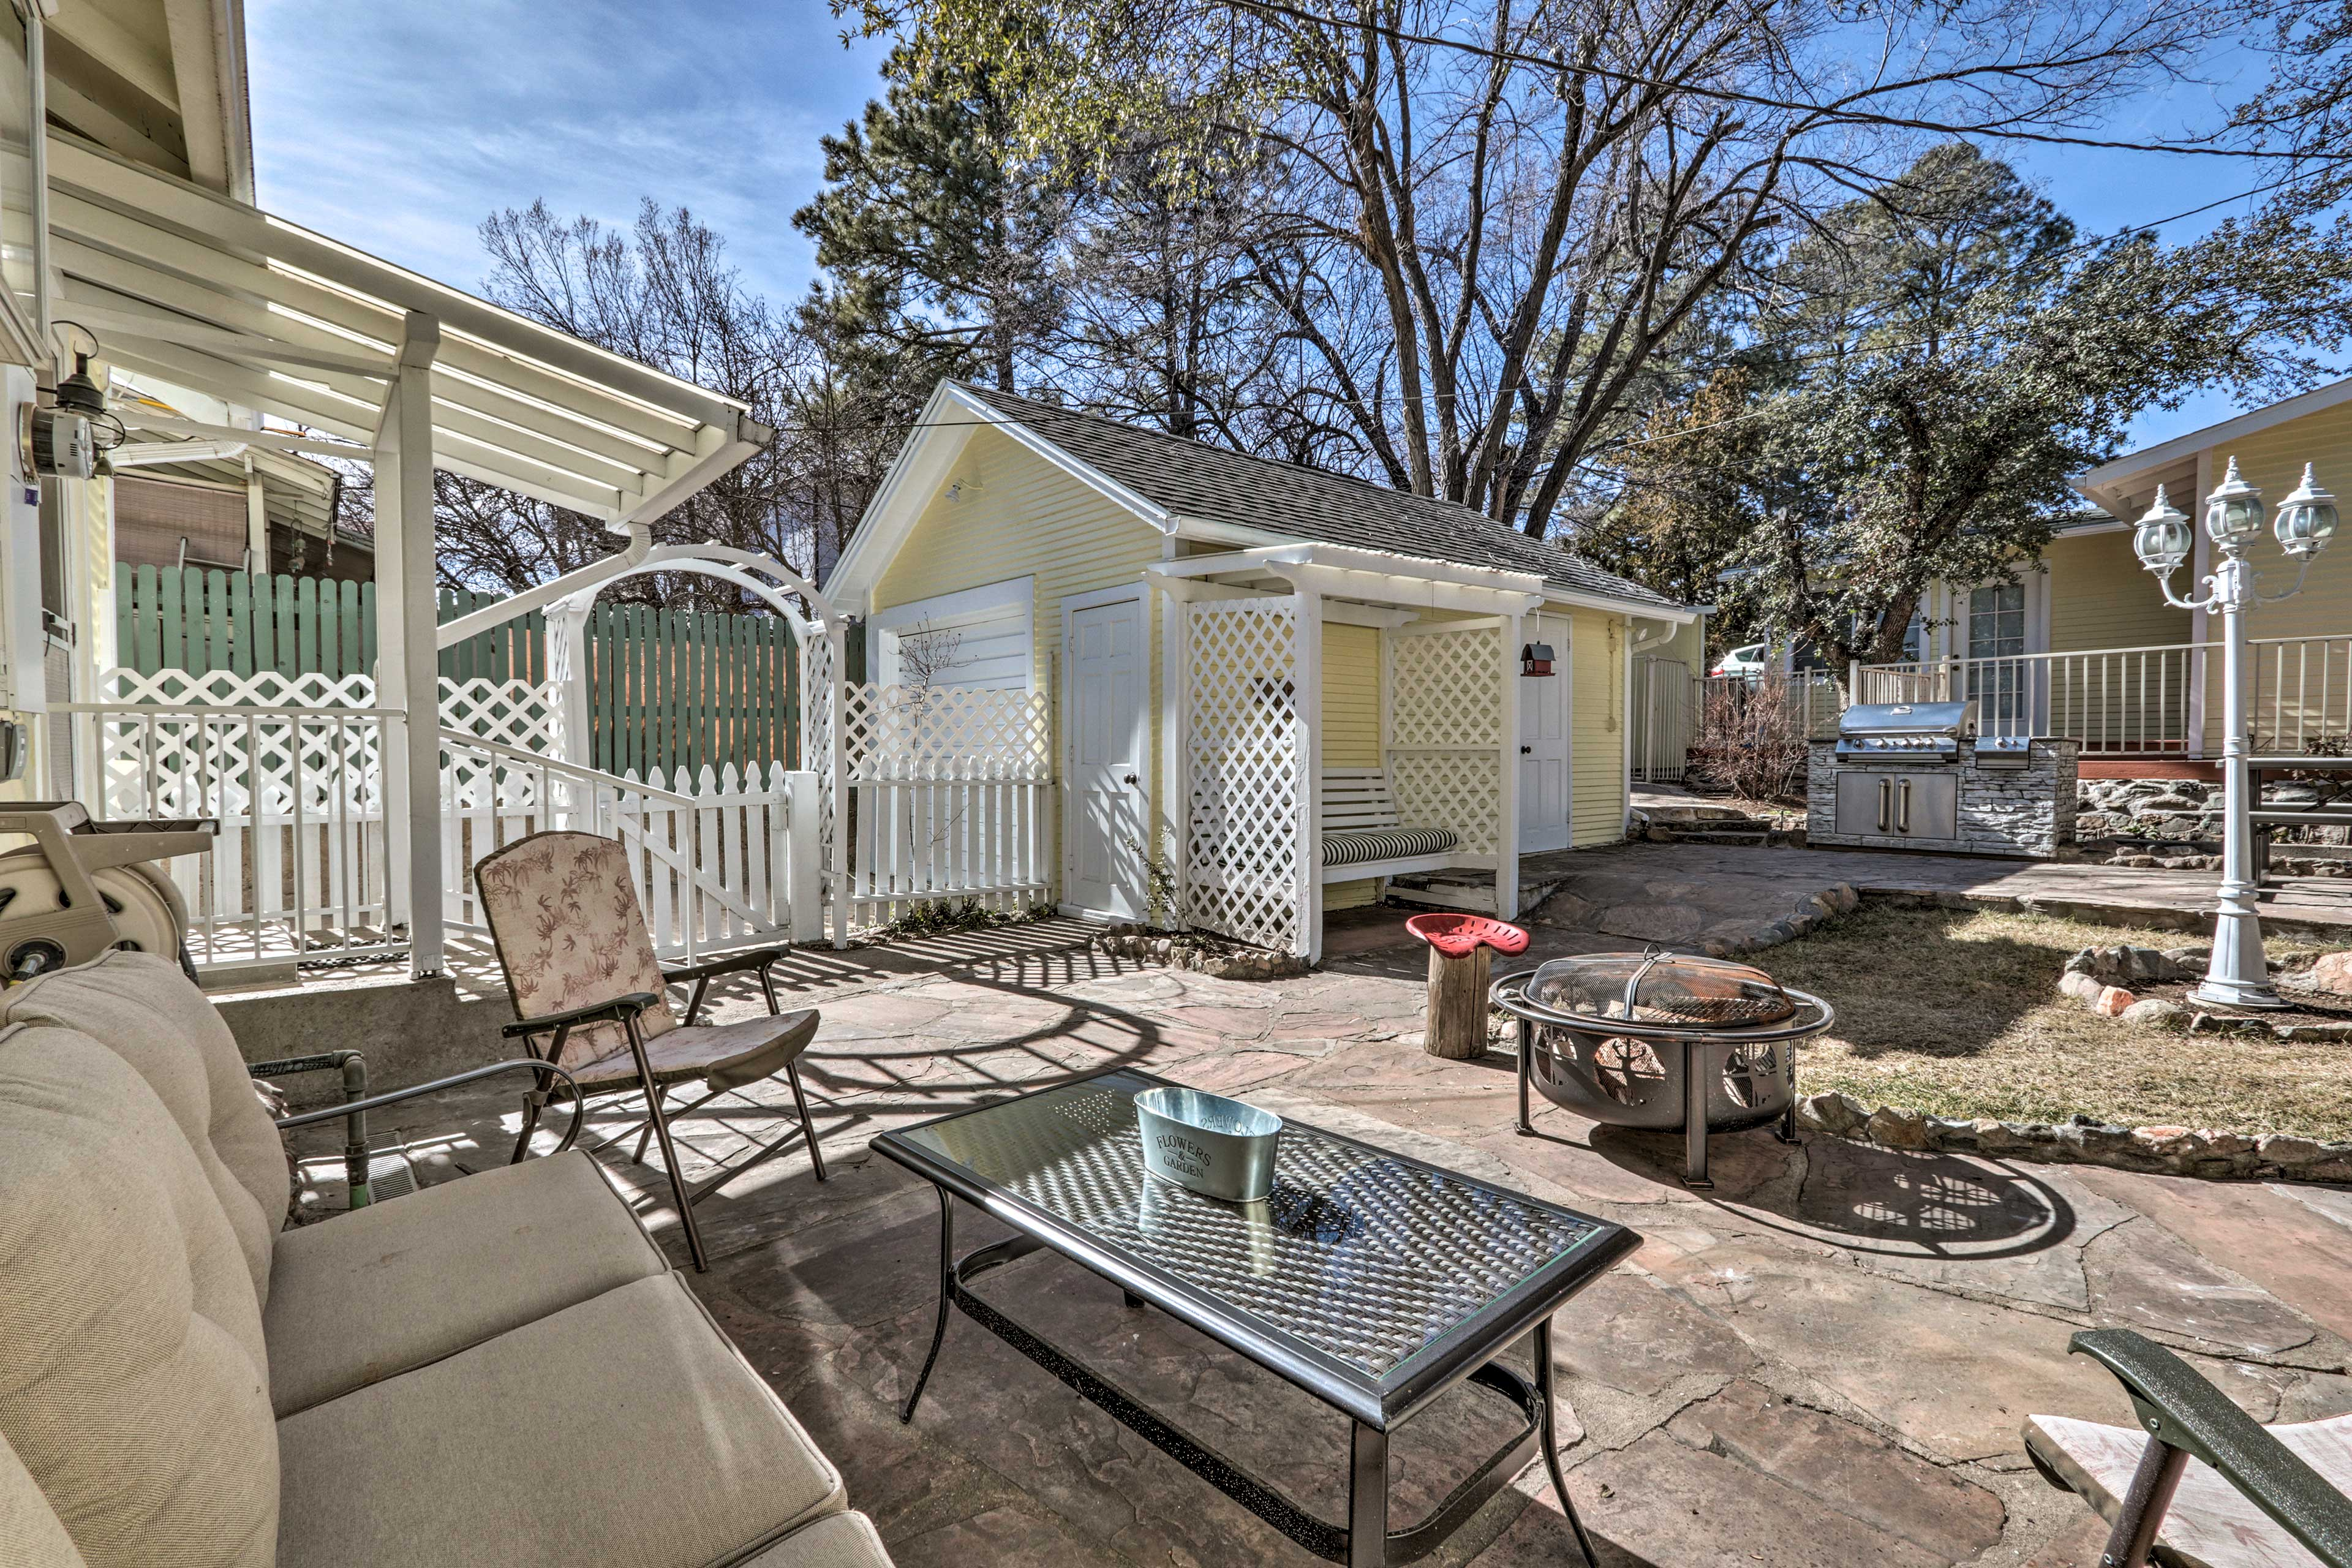 This unit sleeps 4 guests and has an expansive backyard entertainment area!